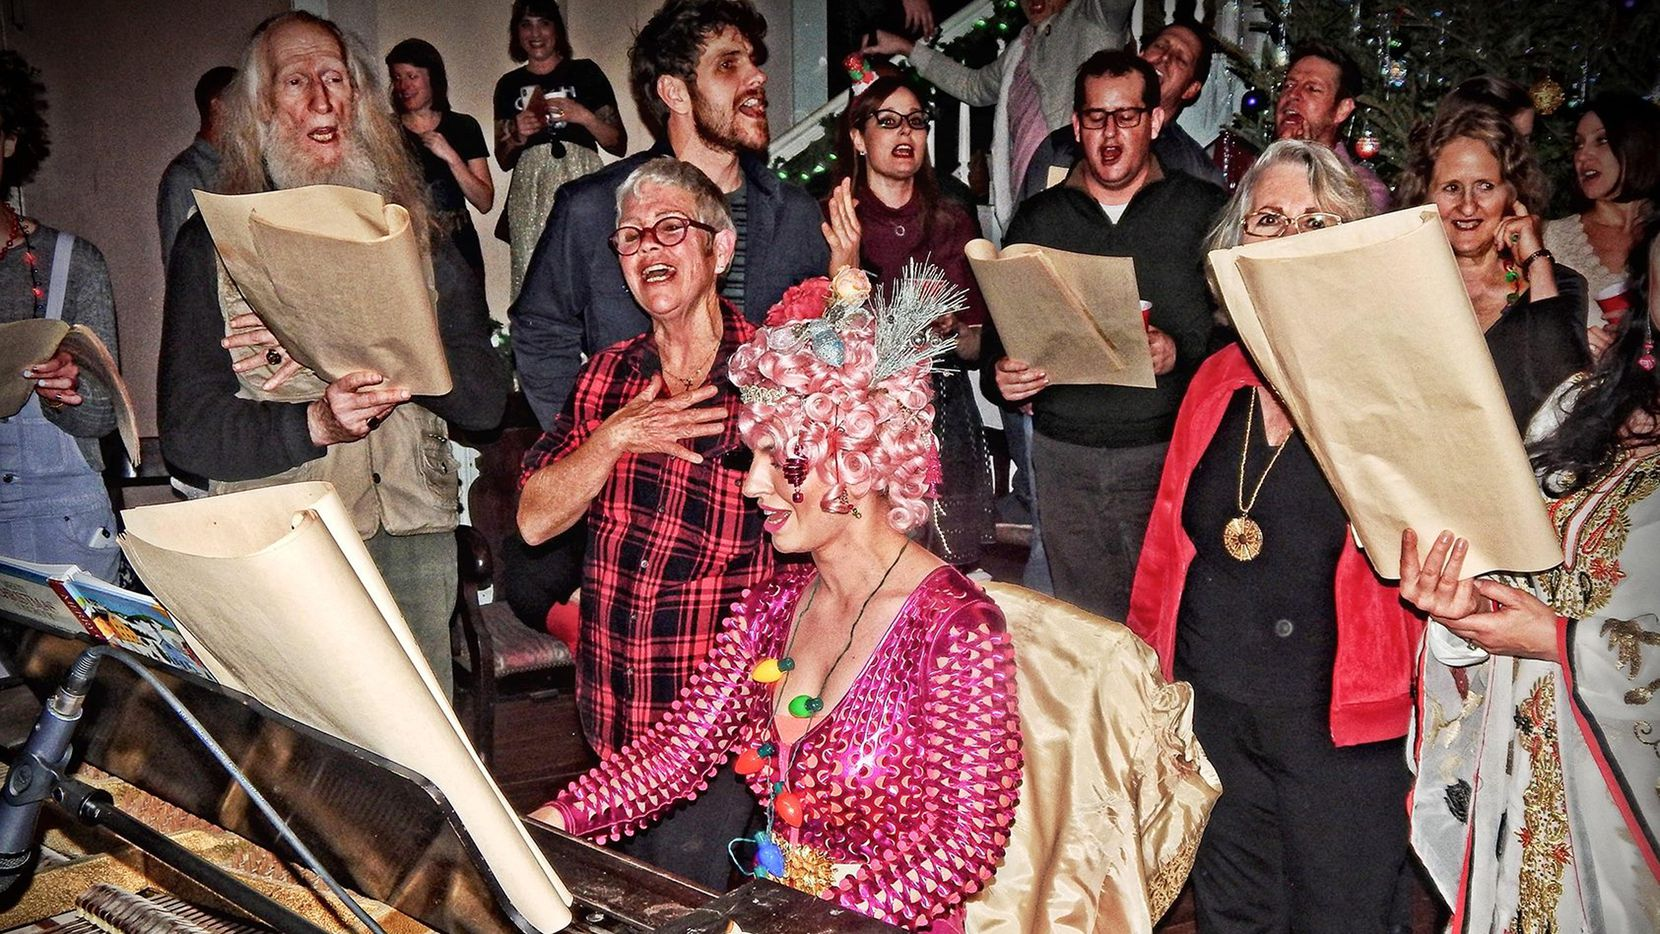 Musician and performer Poppy Xander plays the piano for a 2018 house party on Christmas Eve hosted by John Ashley Bellamy (far left with long beard) at his East Dallas home, a former Methodist Church known as the Moon Mansion. Bellamy died this month, and Poppy will now perform virtually for an online edition of the party.